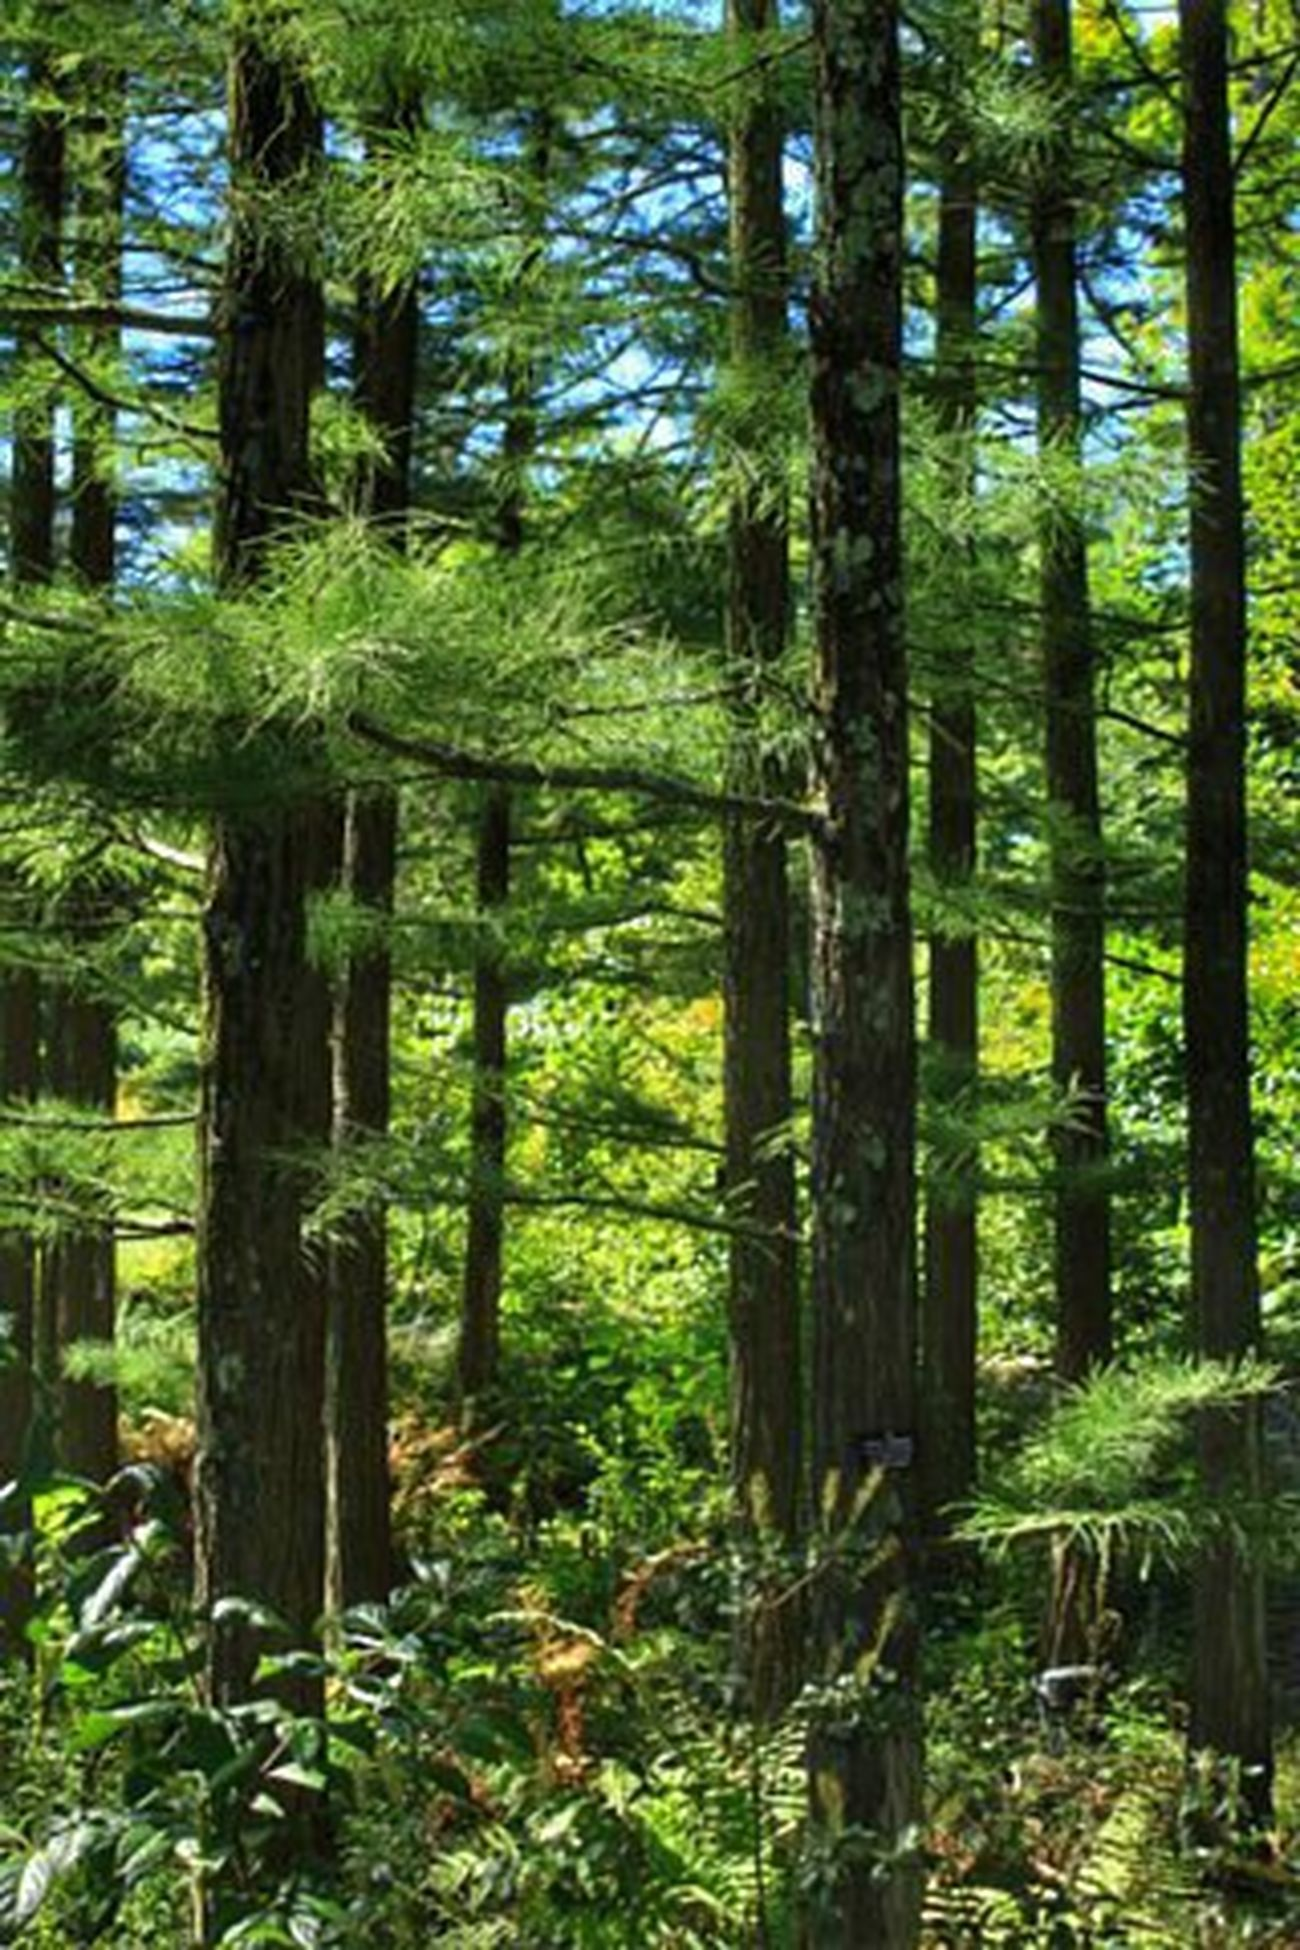 Beauty In Nature WoodLand Forest Lush Foliage Conifers Pine Needles Nature Solitude Outdoors Day Photography Color